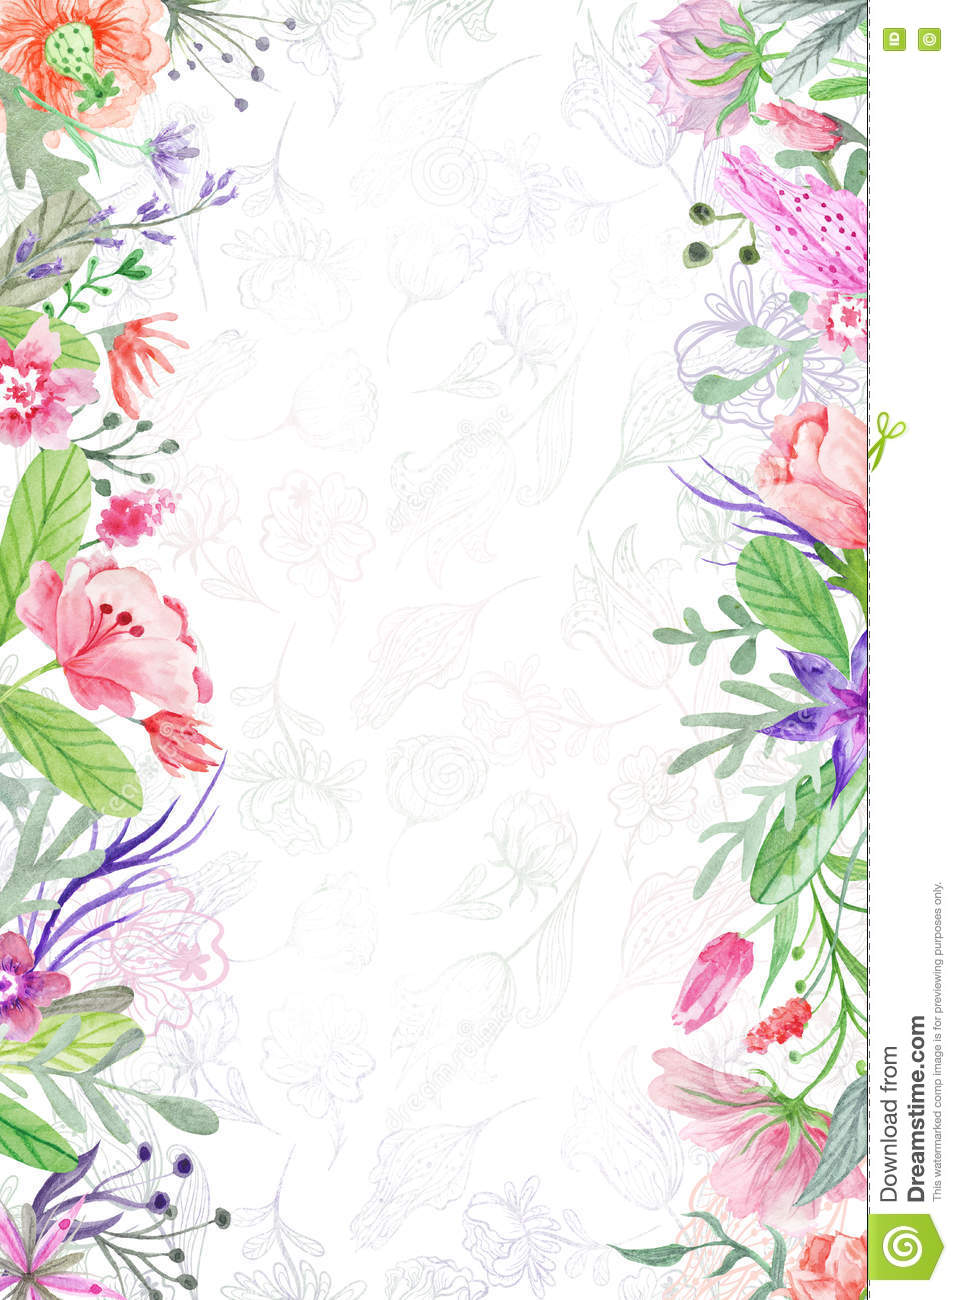 Summer Background With Floral Borders Stock Illustration